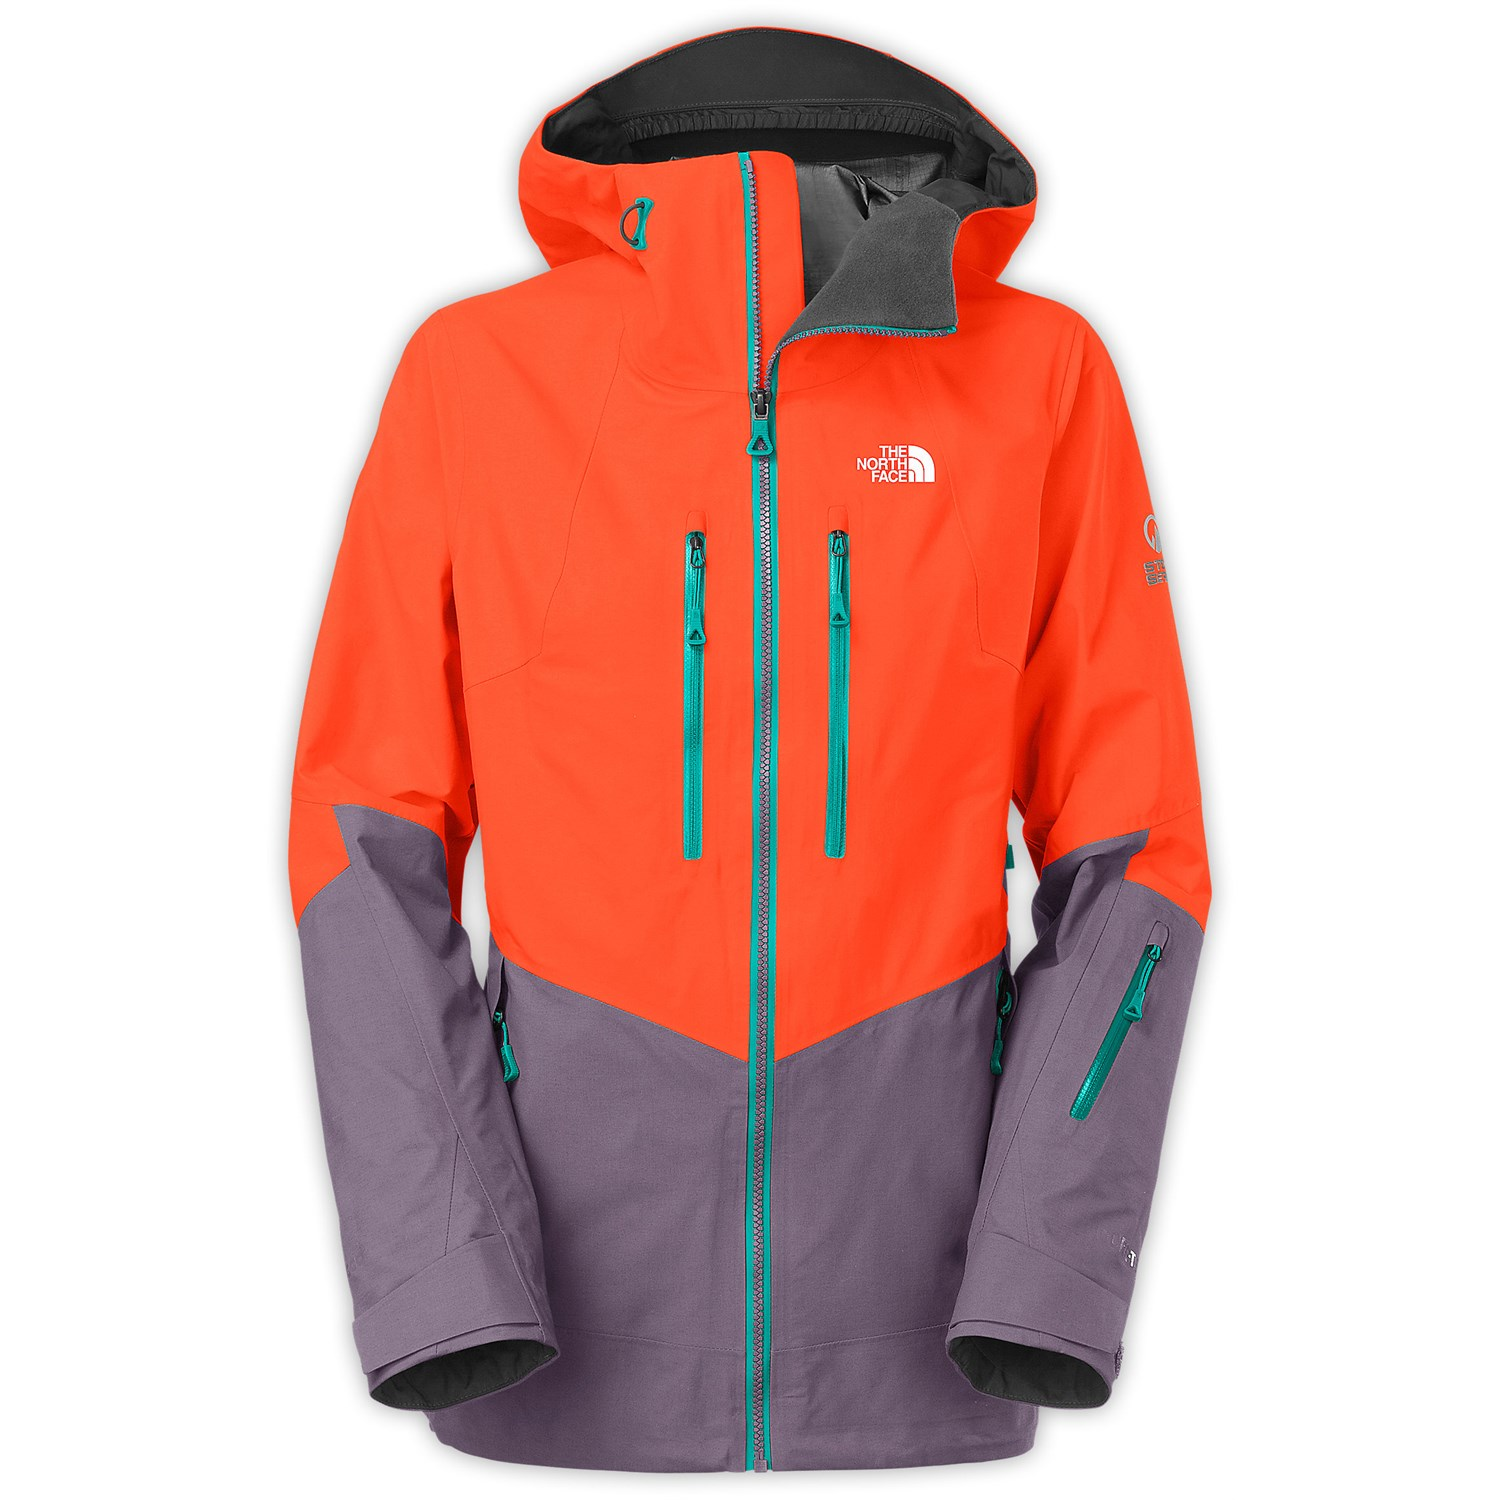 ... italy north face ski jacket womens orange 346ff a9d8b 16a307810